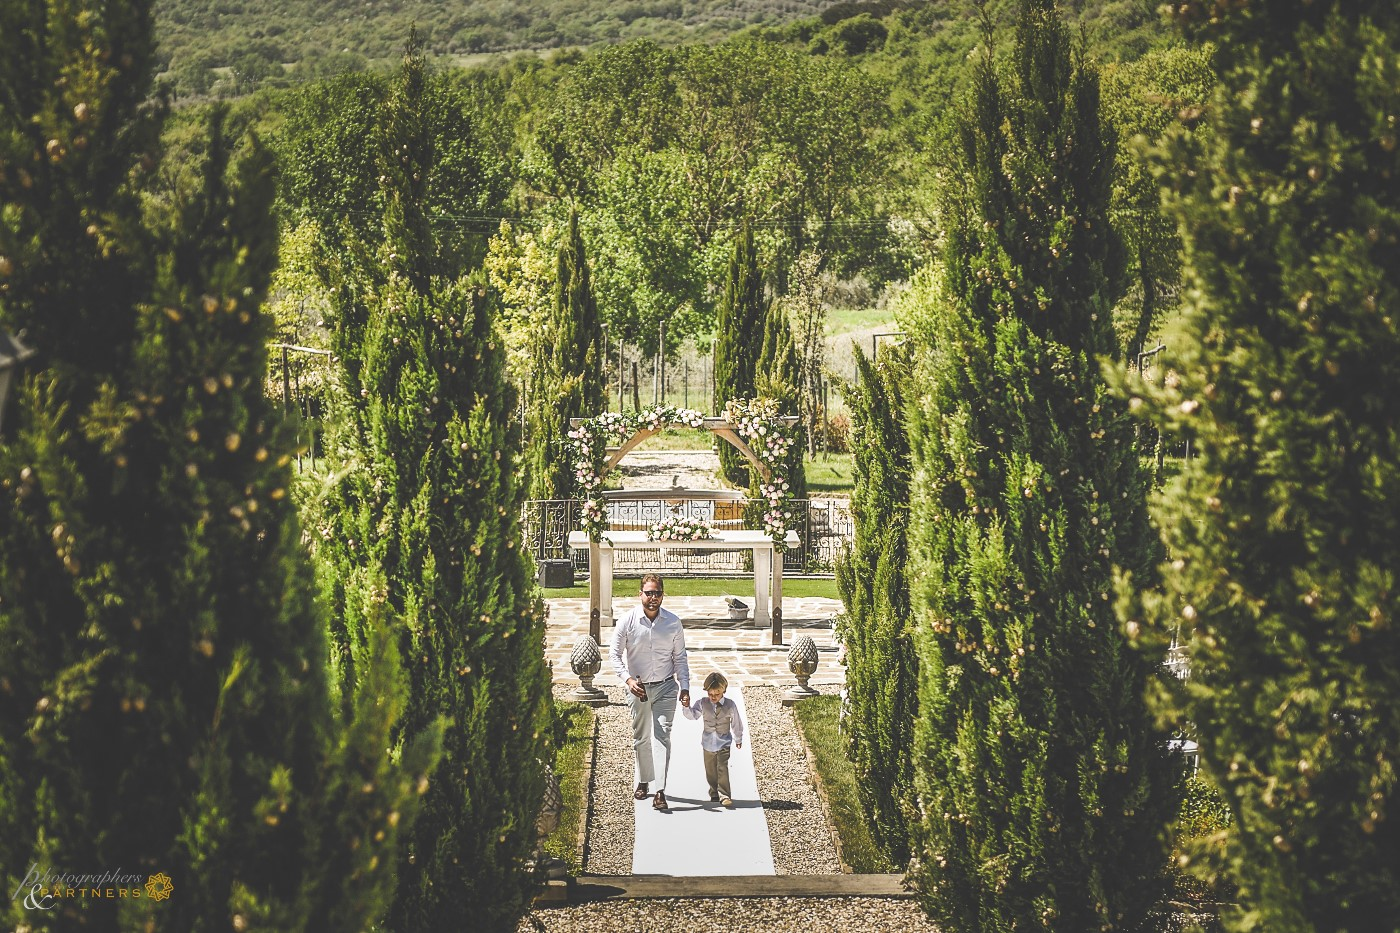 umbria_wedding_photos_04.jpg